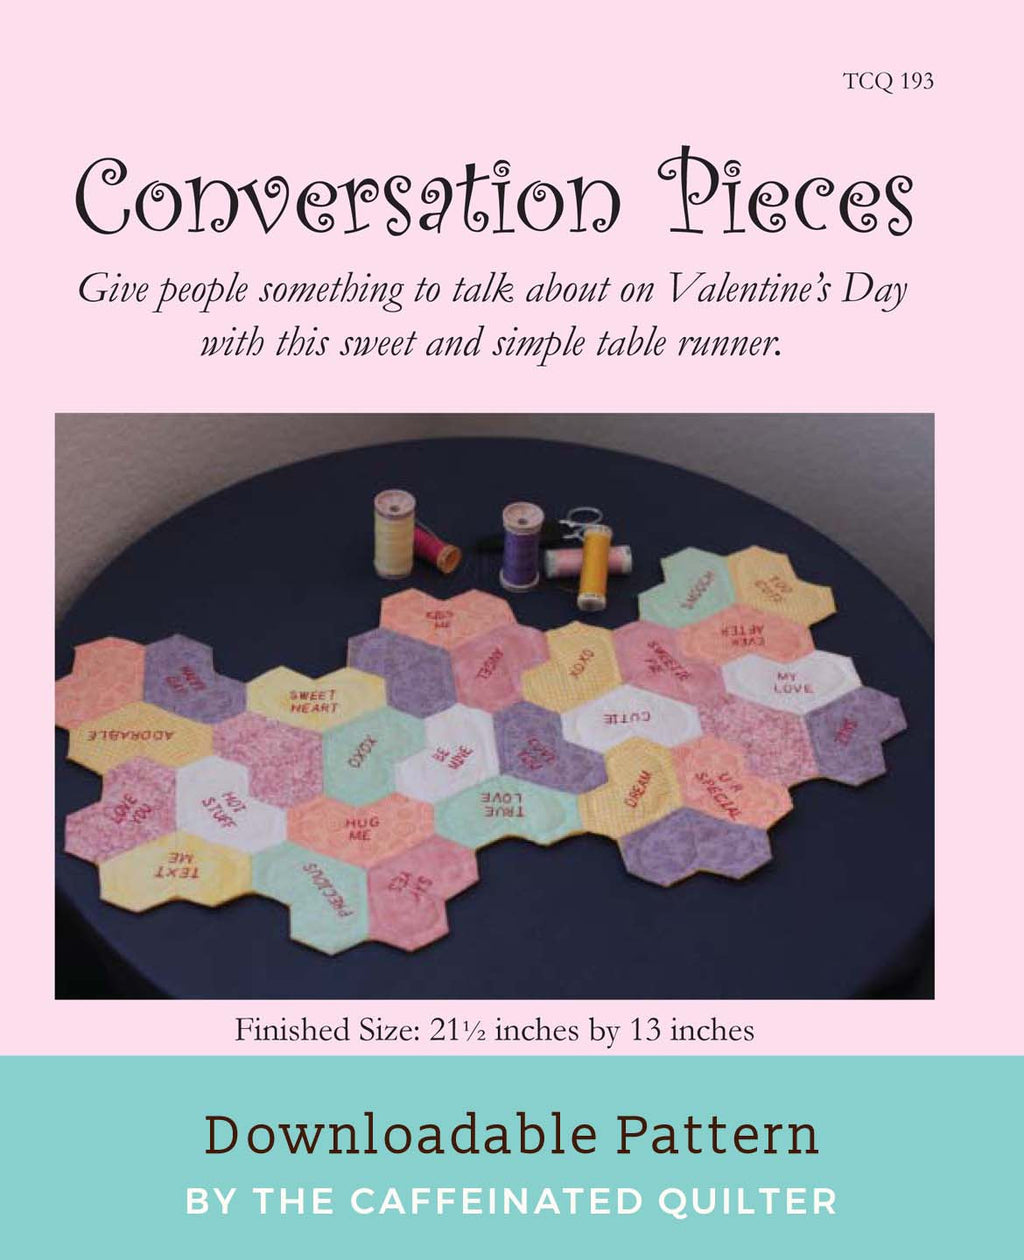 Conversation Pieces Download